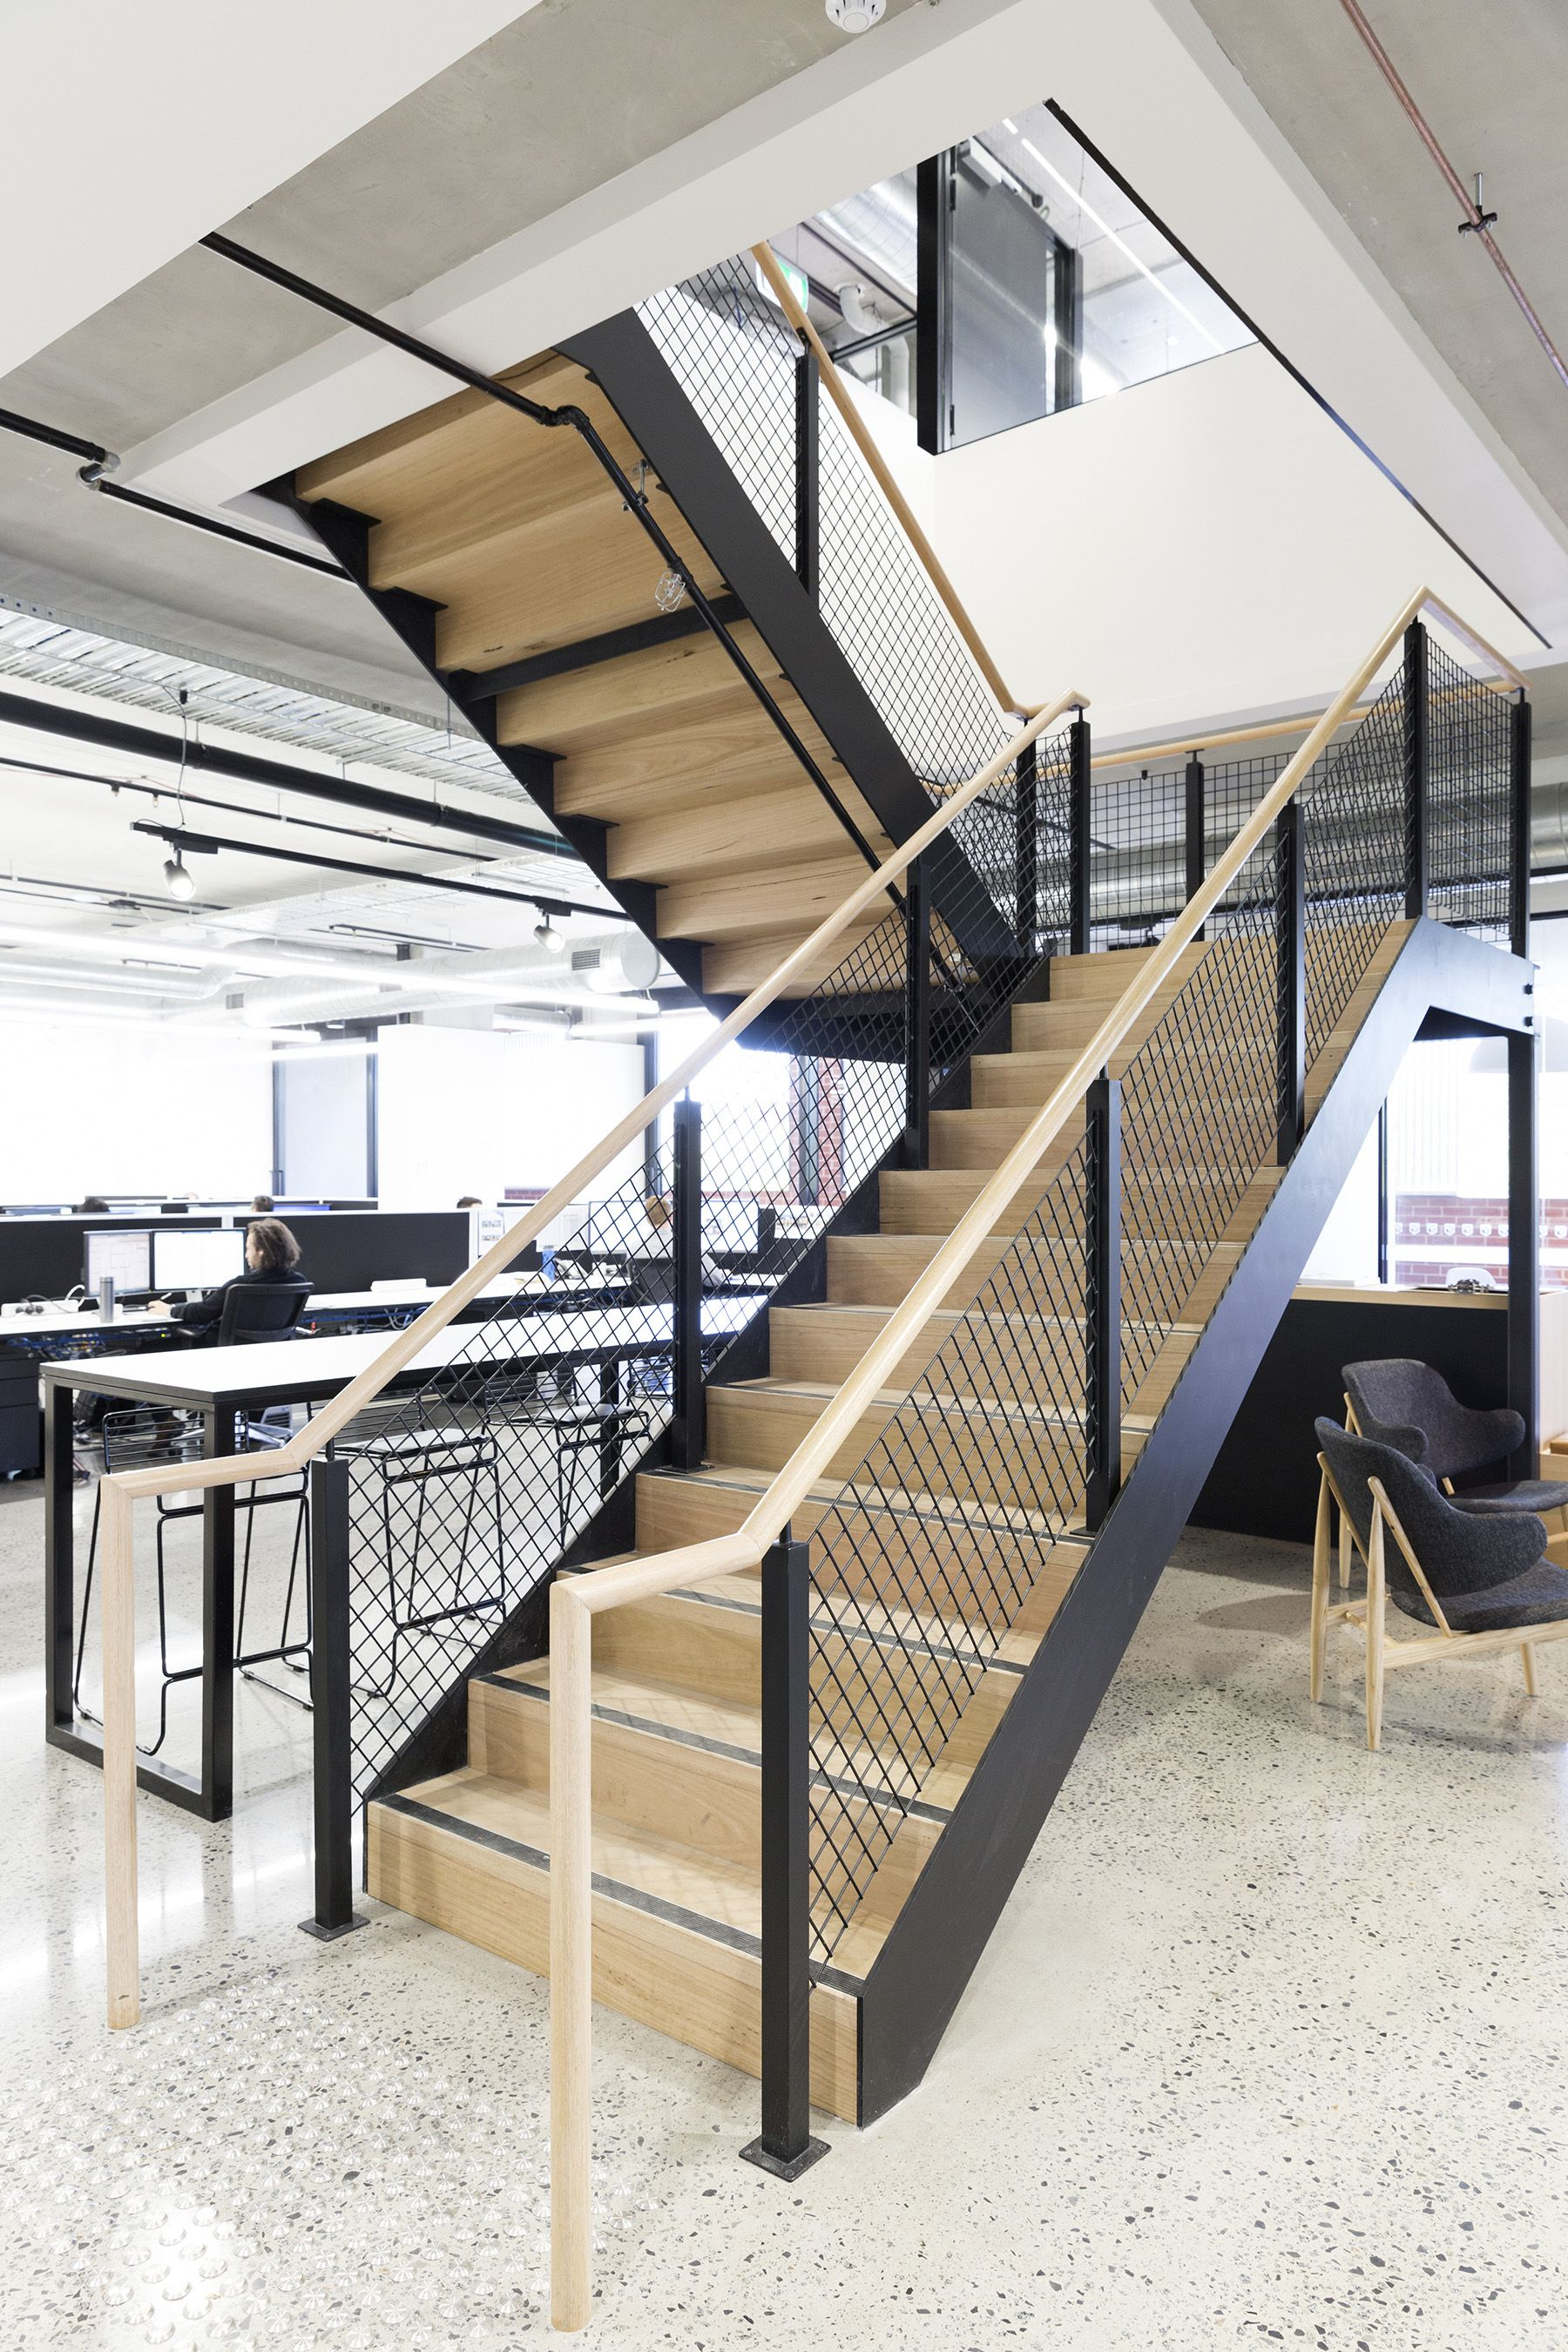 Stairs | Commercial | Treads | Mesh Balustrade | Handrail | Architecture |  Interior Design |